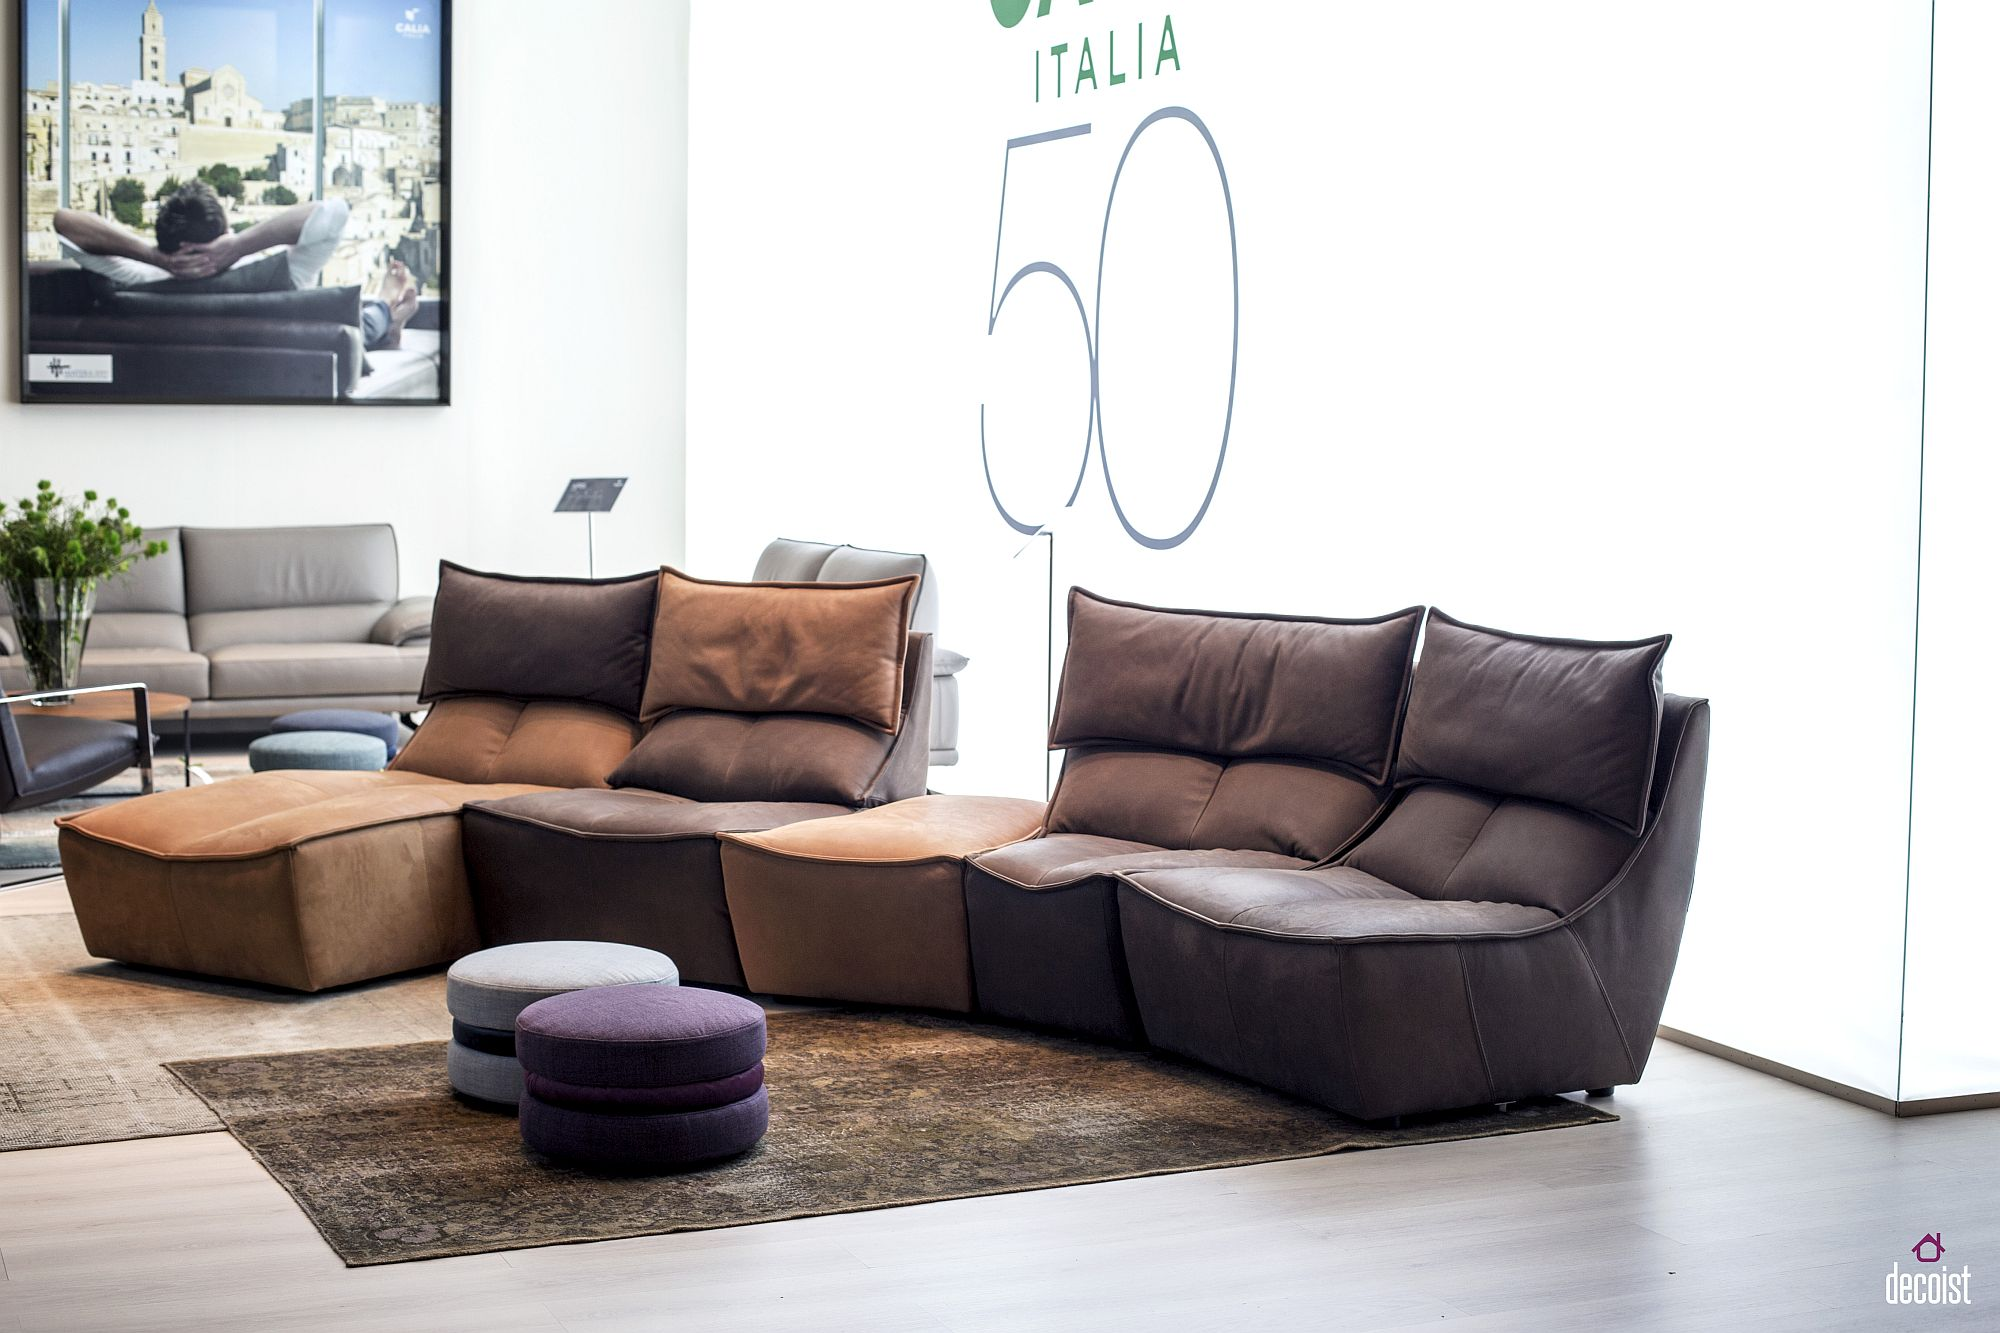 30 bright and comfy sofas that add color to the living room - Calia italia ...